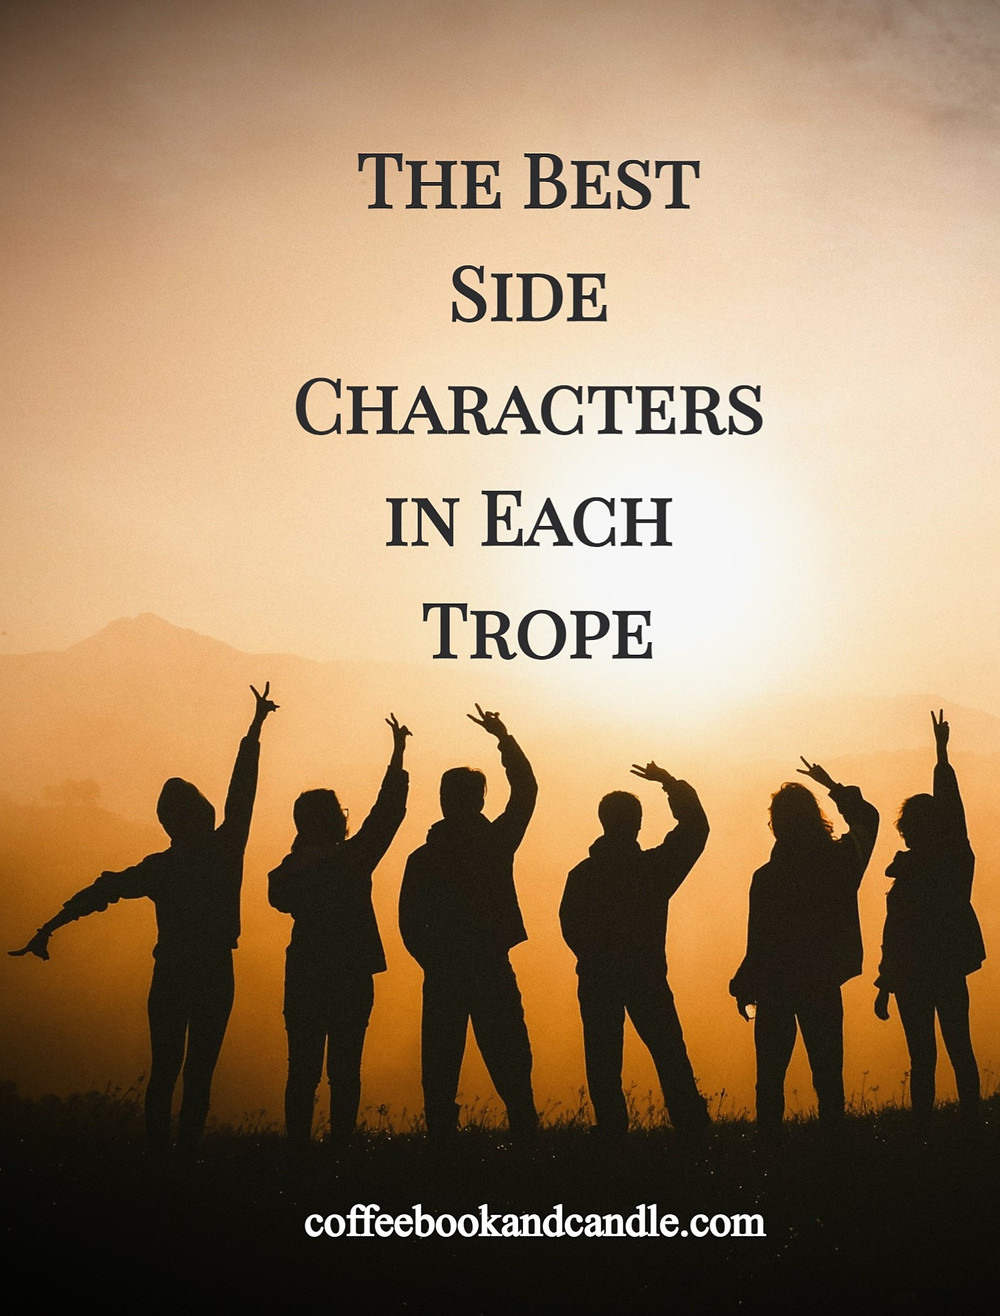 The Best Side Characters in Each Trope Coffee, Book, and Candle